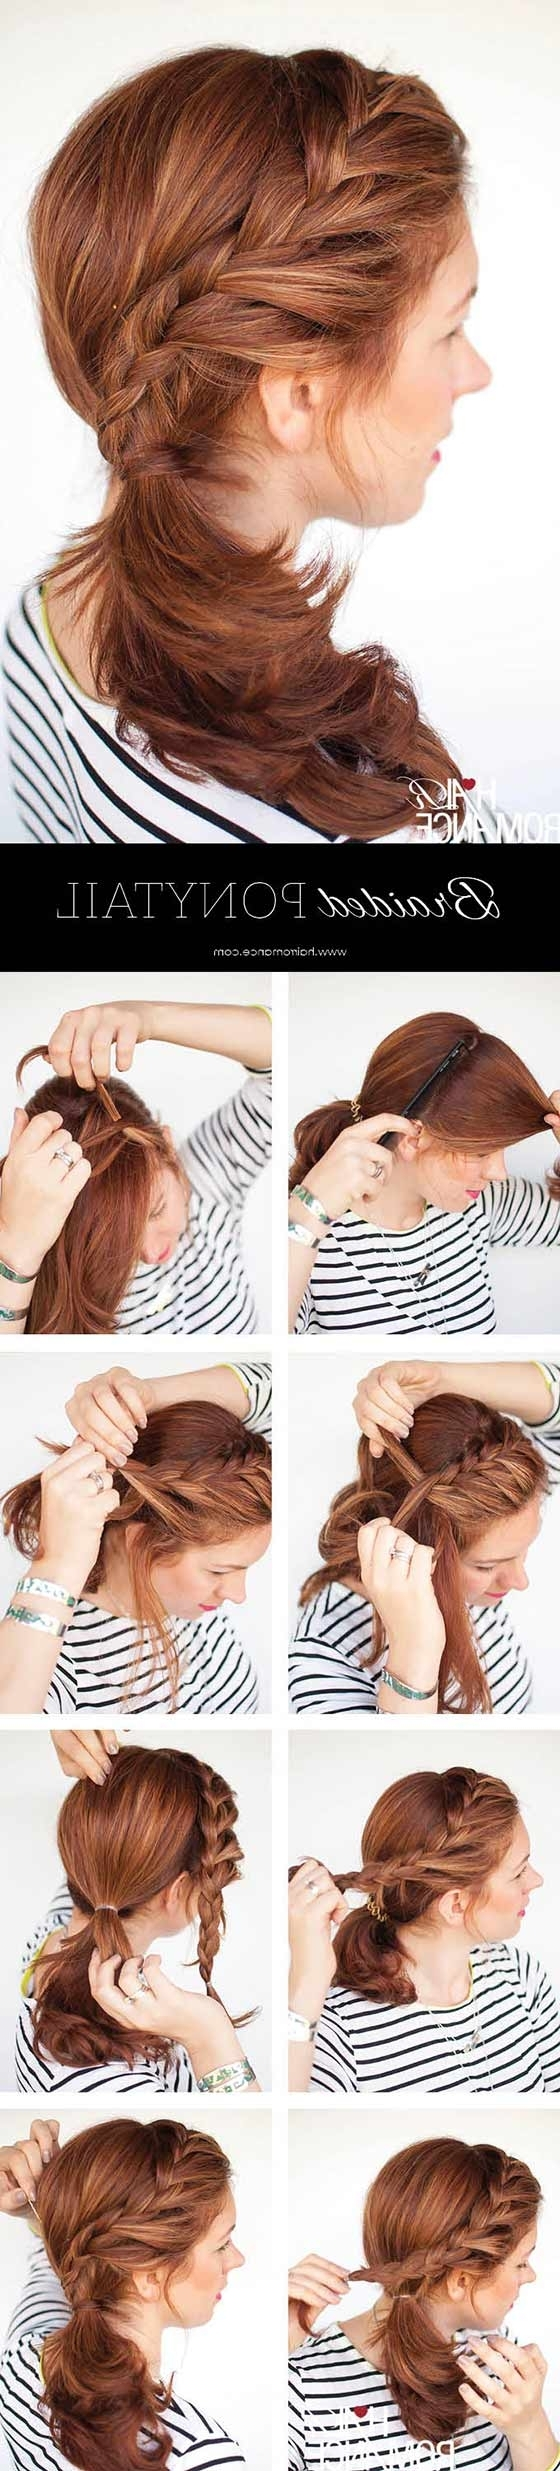 40 Braided Hairstyles For Long Hair With Regard To Well Known Loosely Braided Ponytail Hairstyles (View 5 of 20)